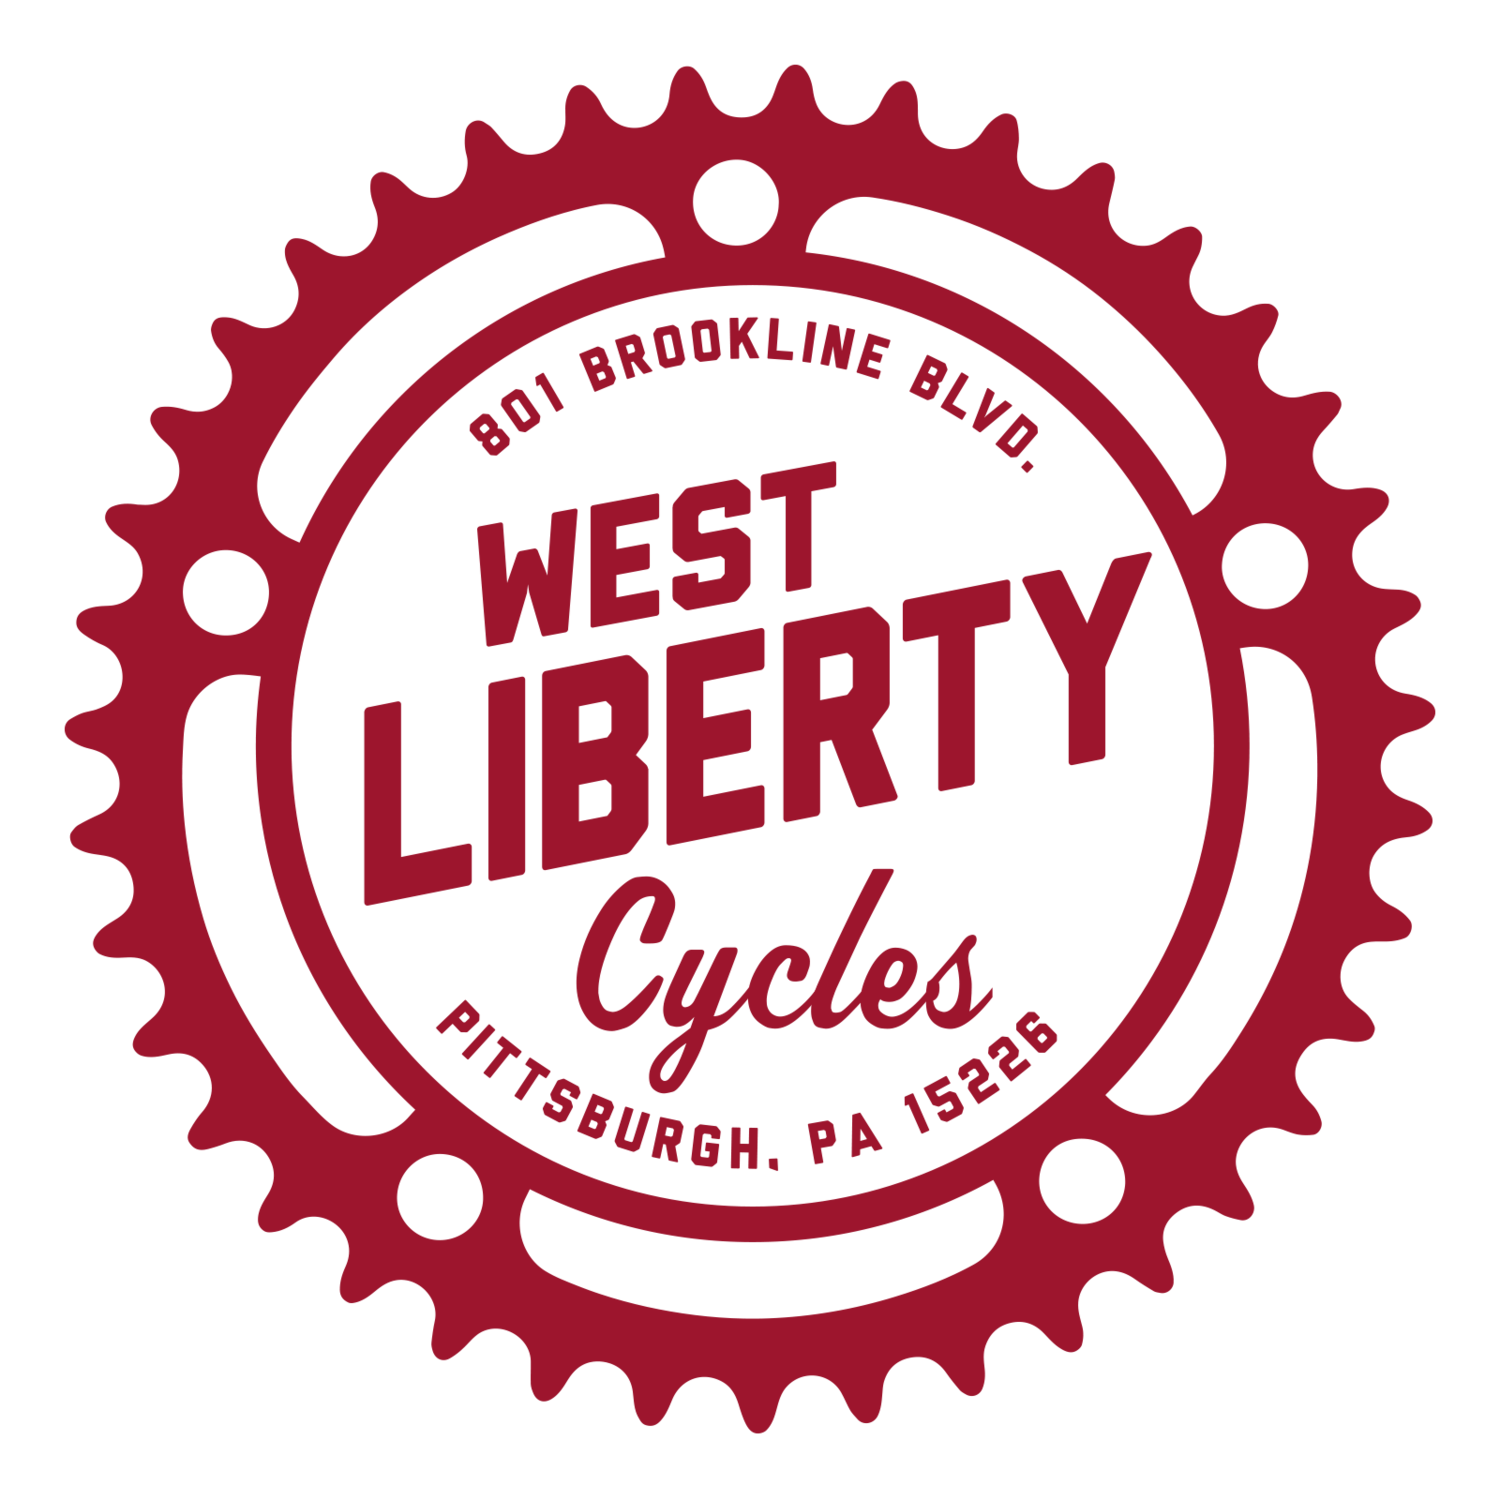 West Liberty Cycles